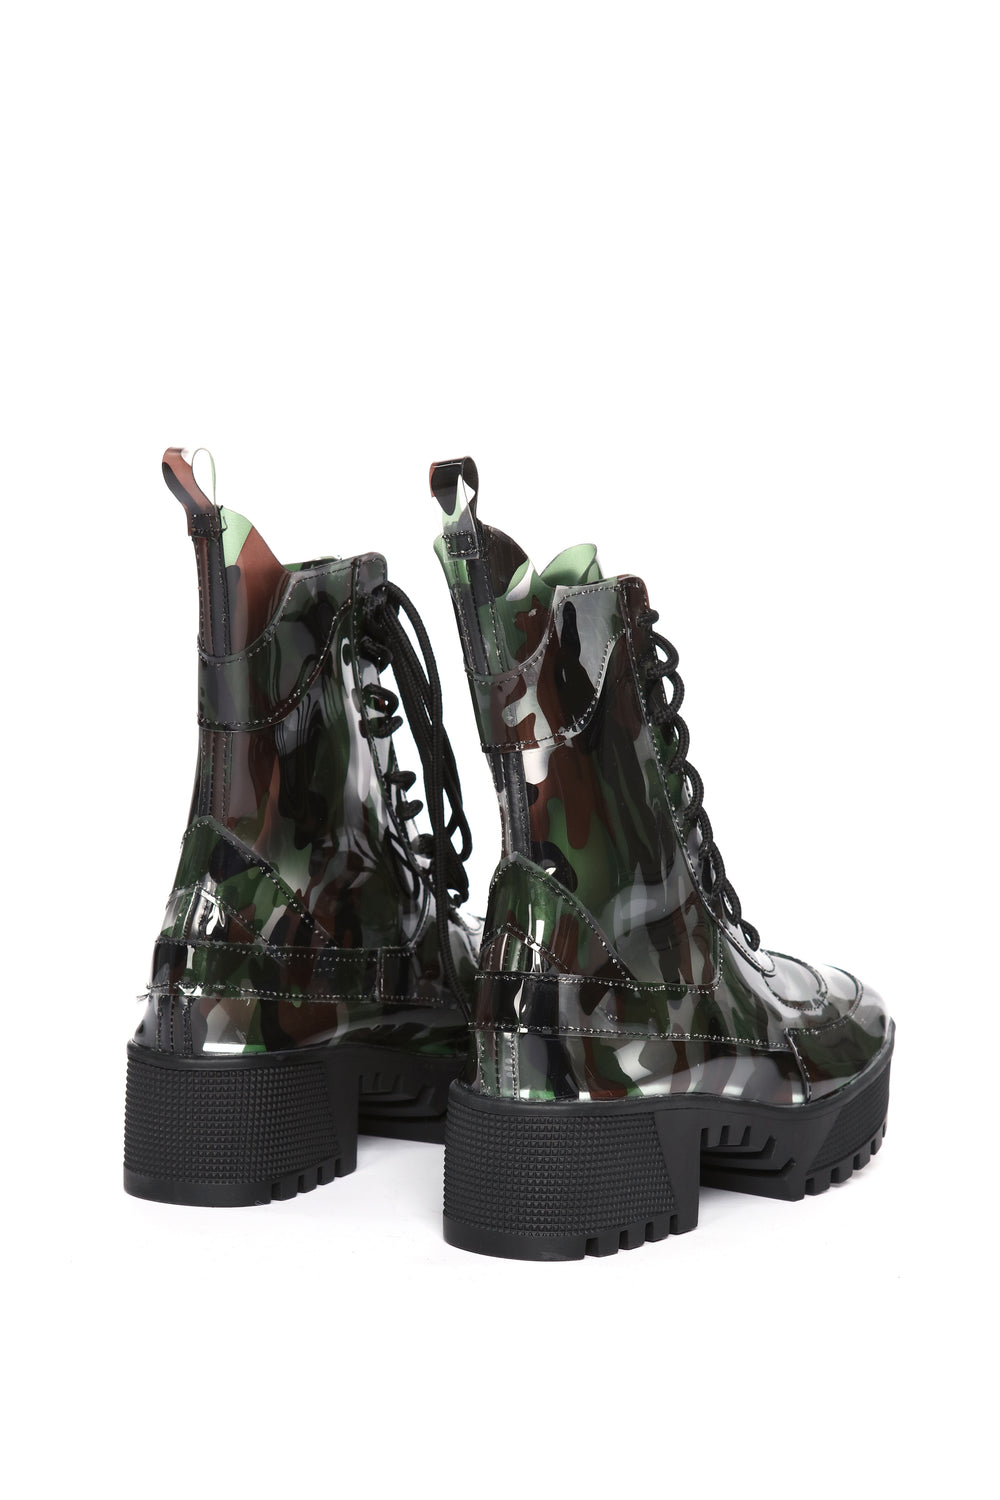 Don't Touch Me Bootie - Camo